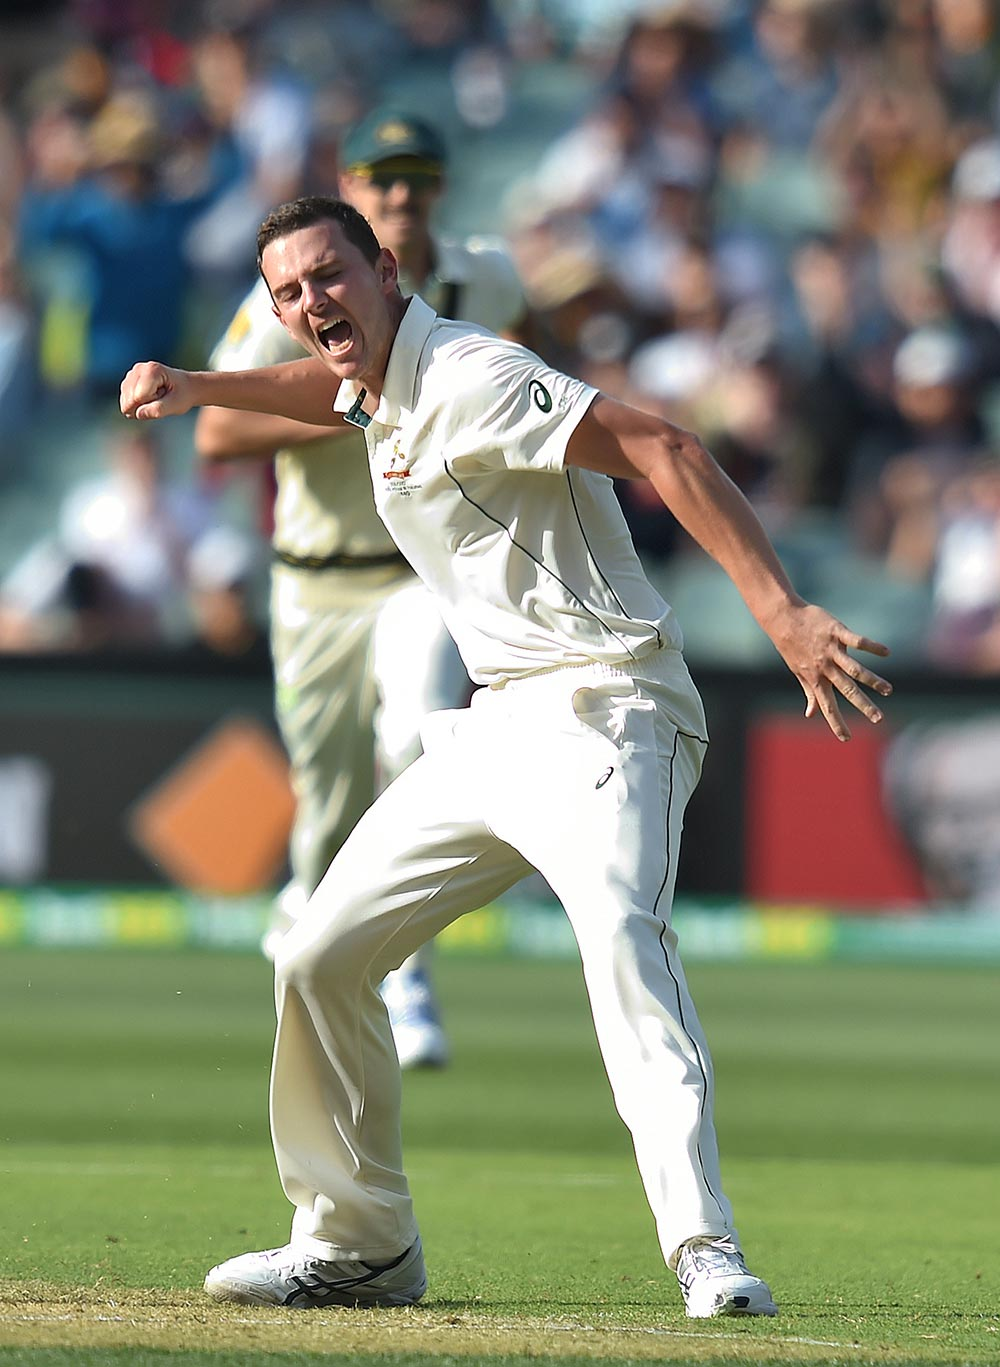 Australian bowler Josh Hazlewood reacts after dismissing South African batsman Quentin de Kock on day 1 of the third Test match between Australia and South Africa at the Adelaide Oval in Adelaide, Thursday, Nov. 24, 2016. Australia play South Africa in the third and final Test match tomorrow. (AAP Image/Dave Hunt)